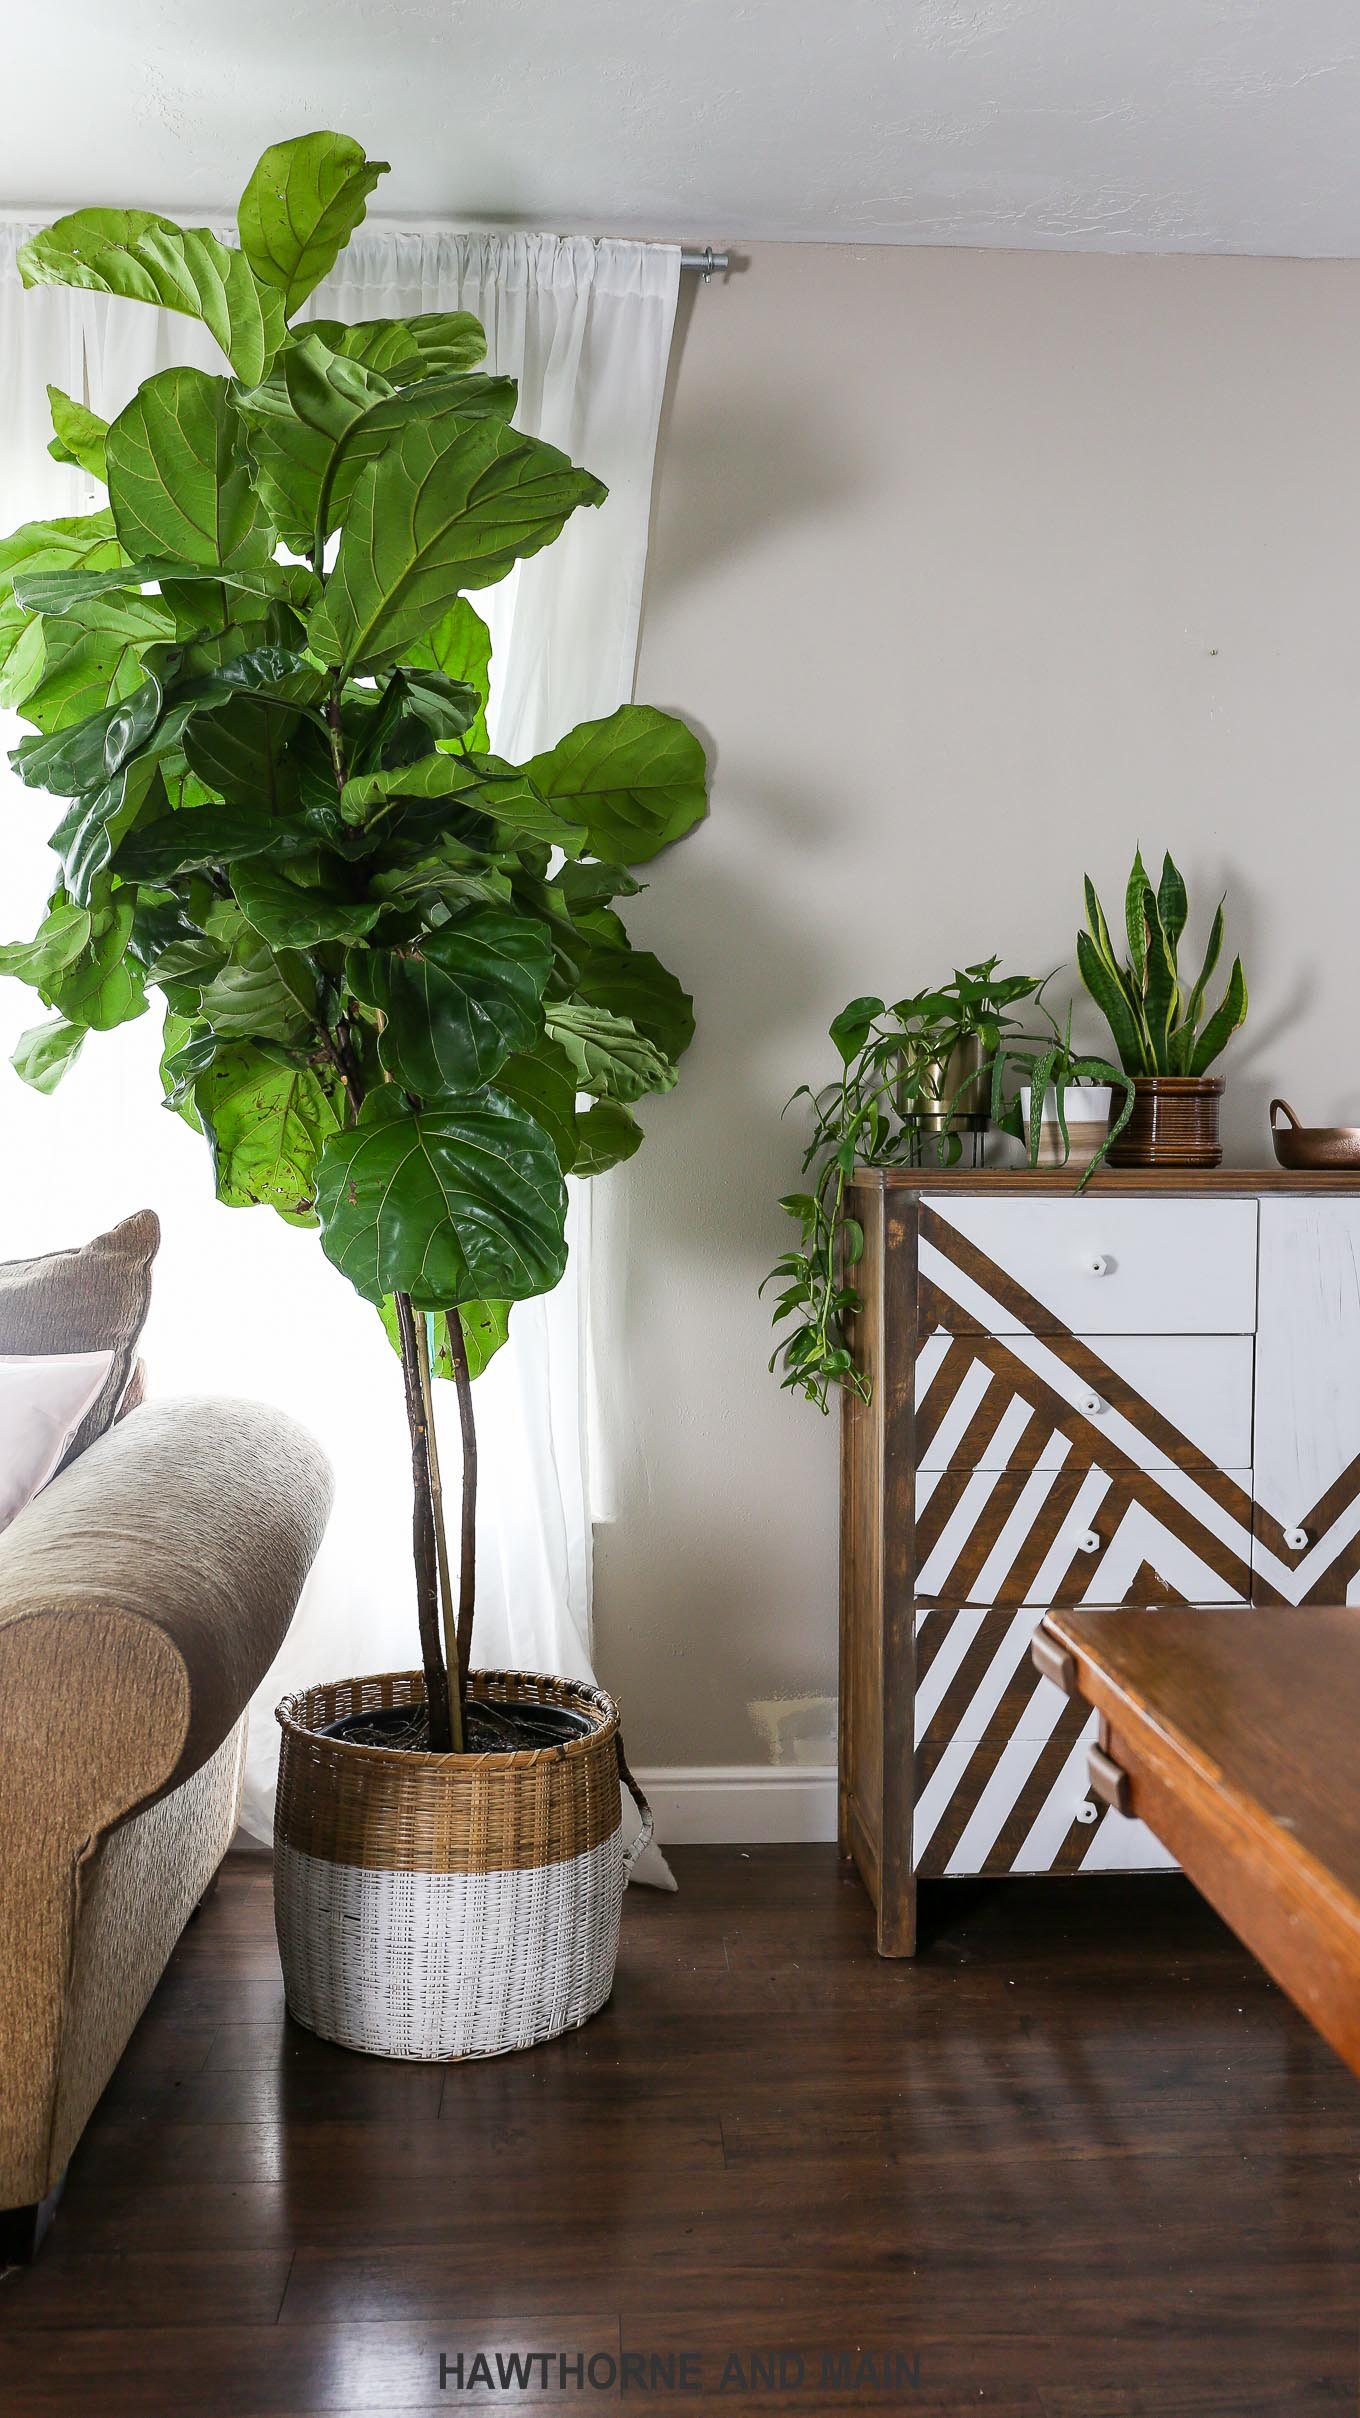 Fiddle Leaf Fig Tree How To Care For A Fiddle Leaf Fig Tree Hawthorne And Main